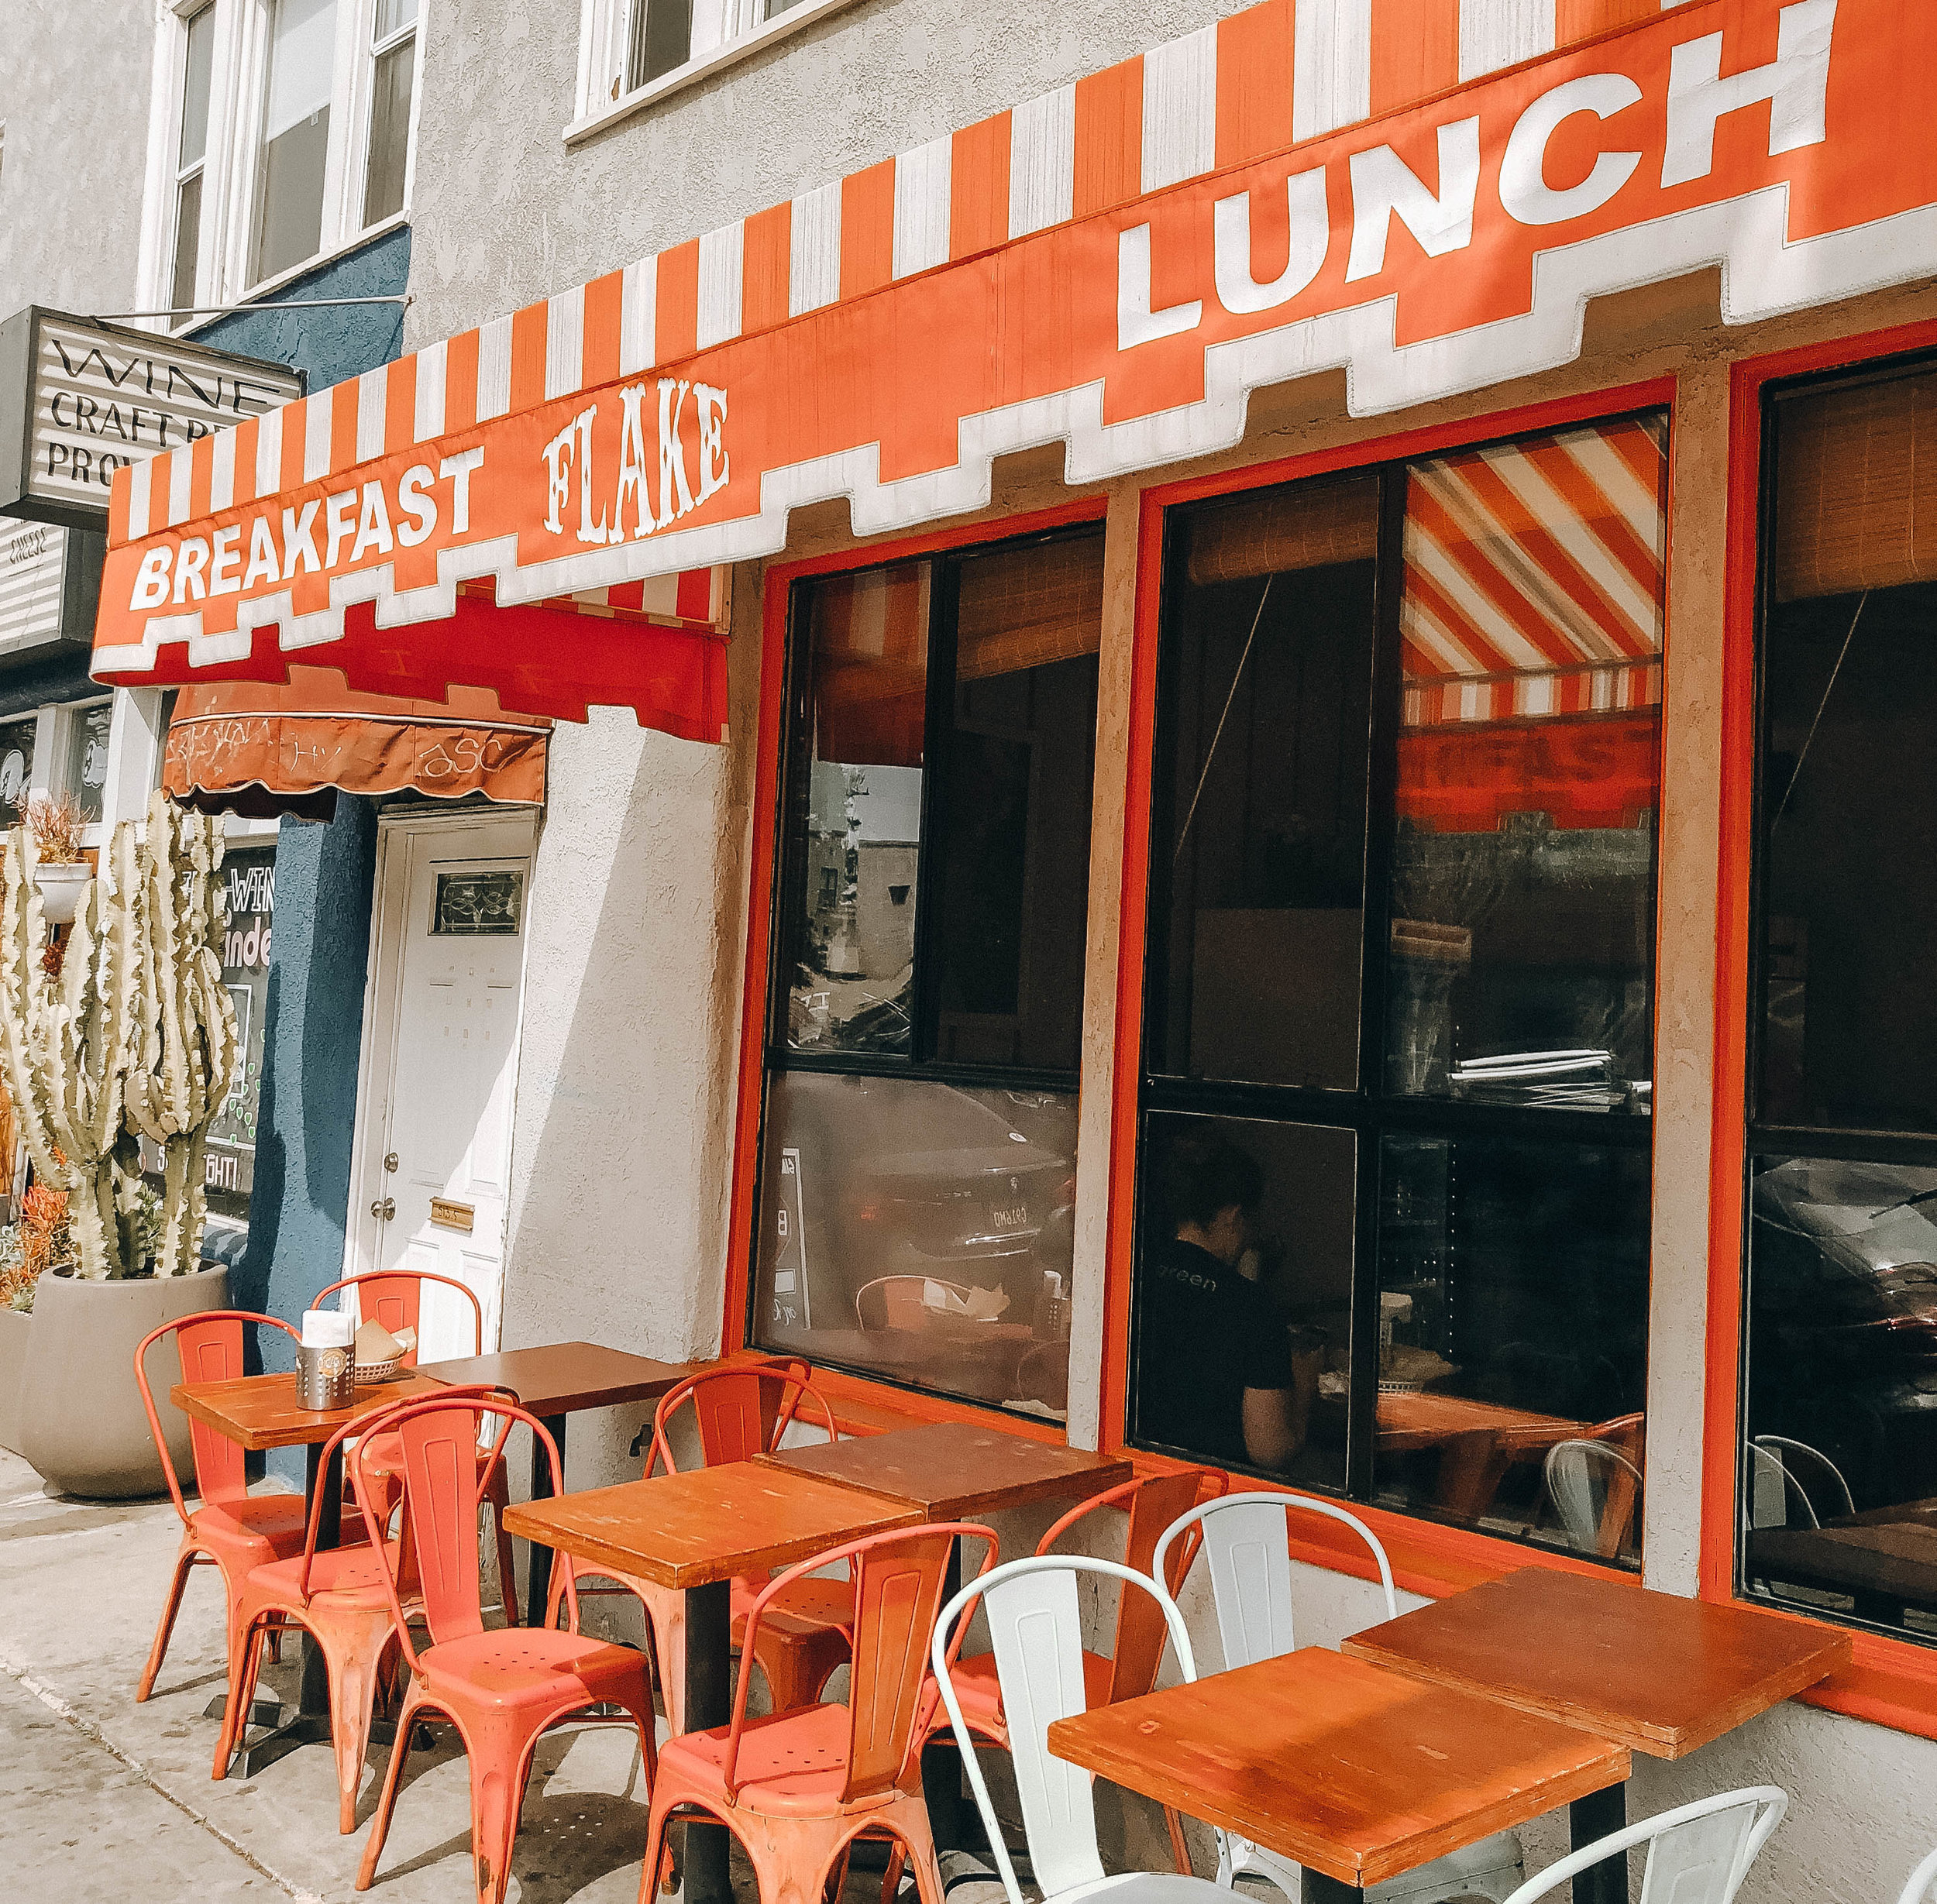 Where to get the best Breakfast: Venice,CA -